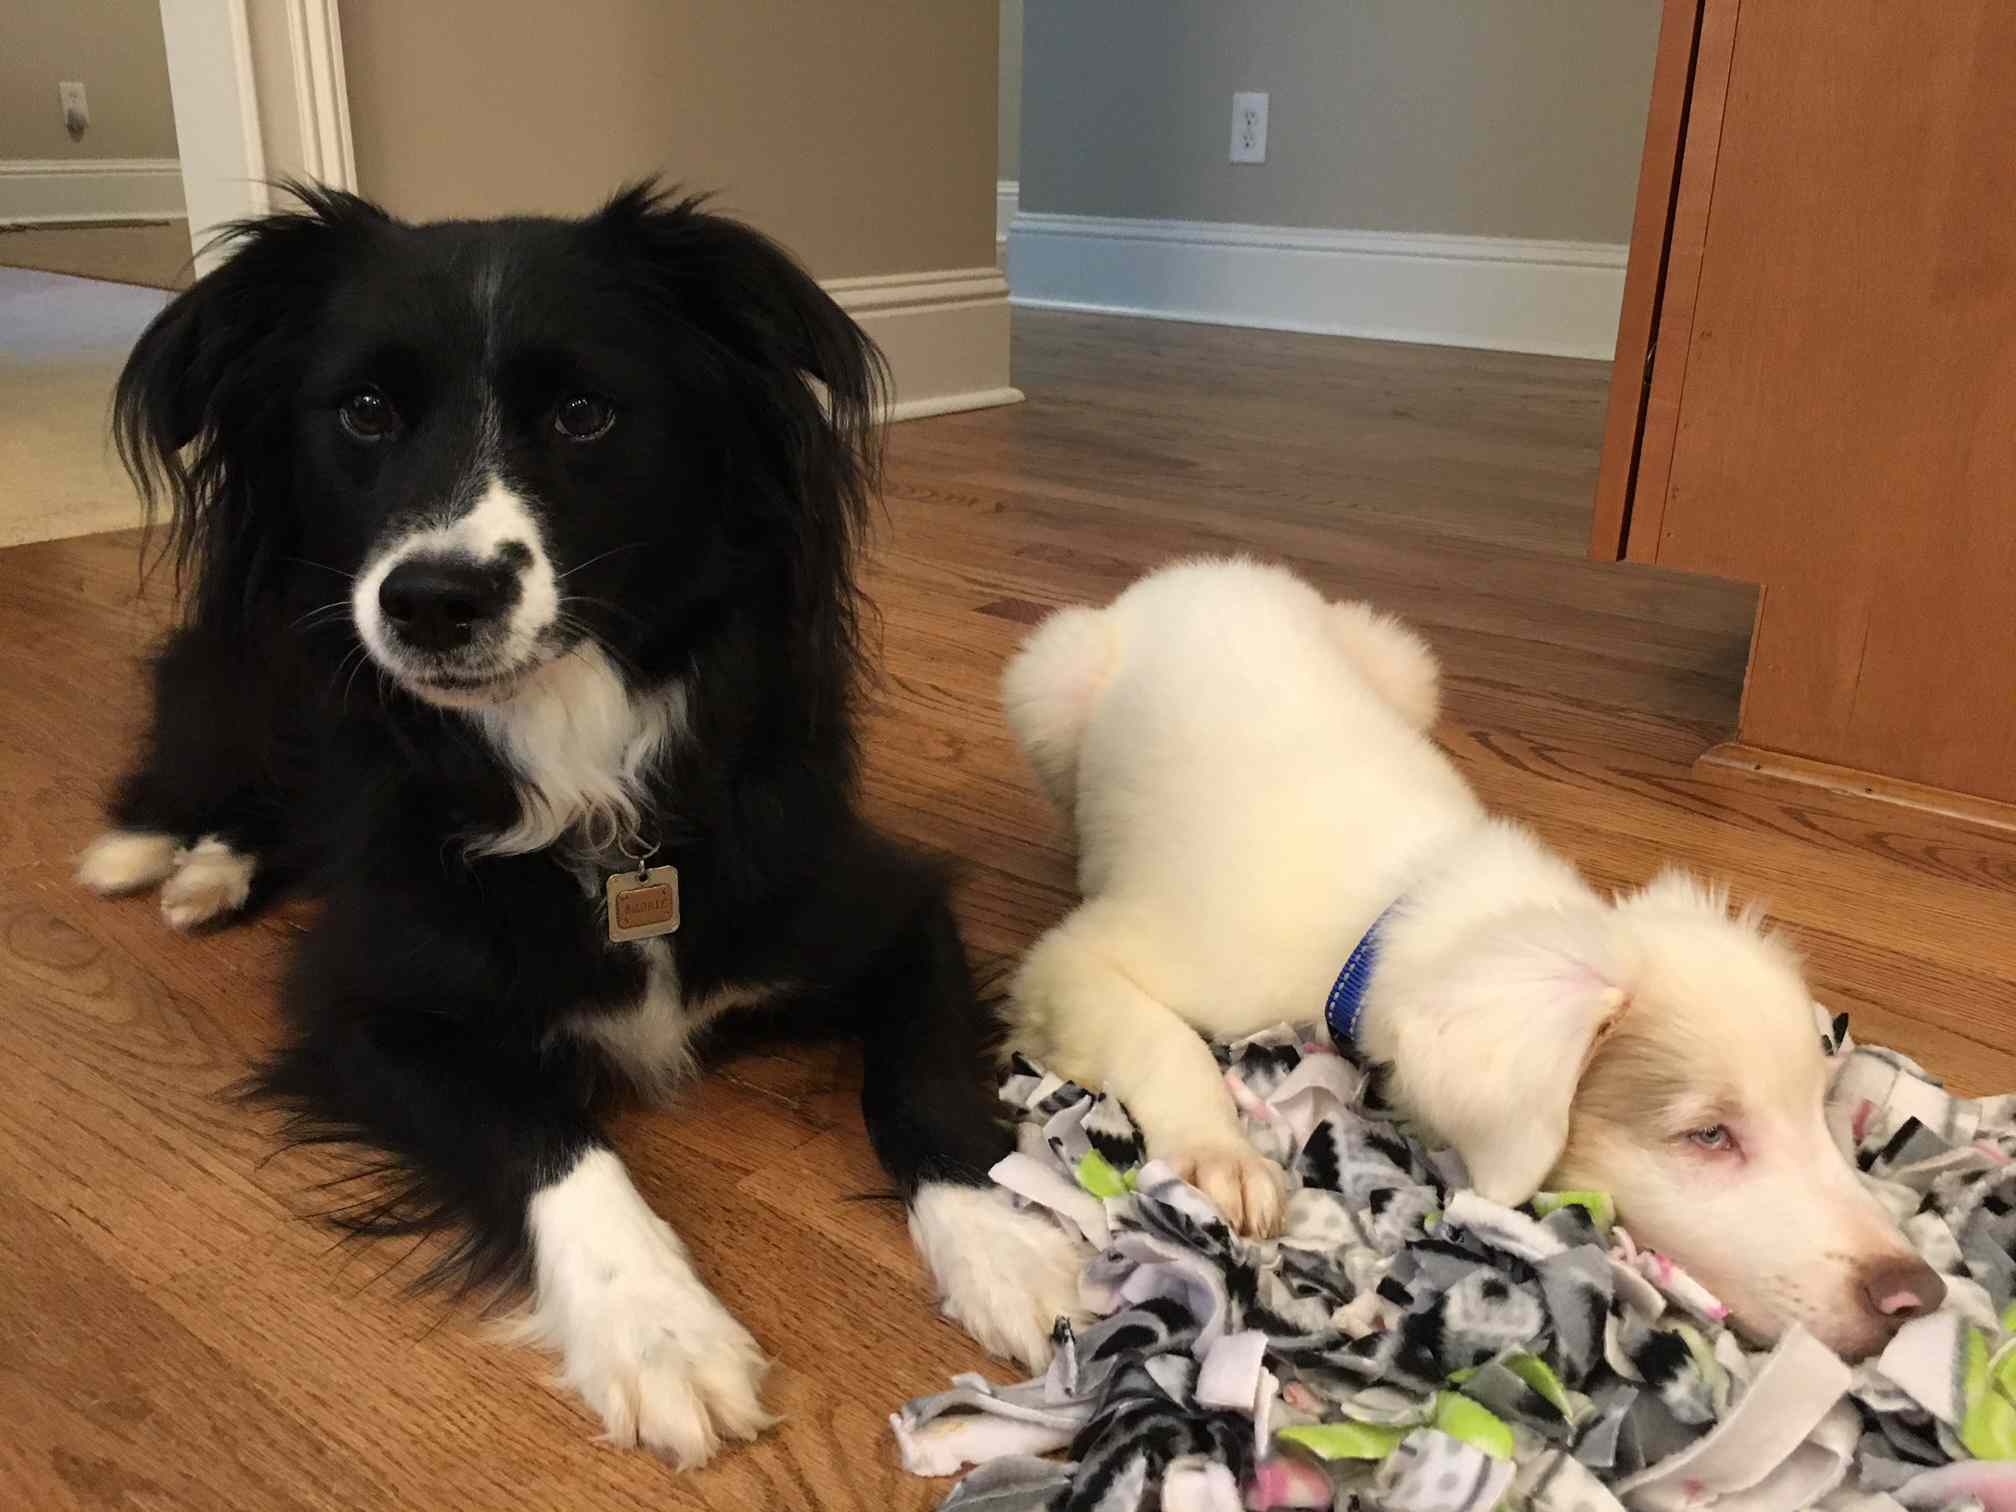 blind puppy and adult dog with snuffle mat